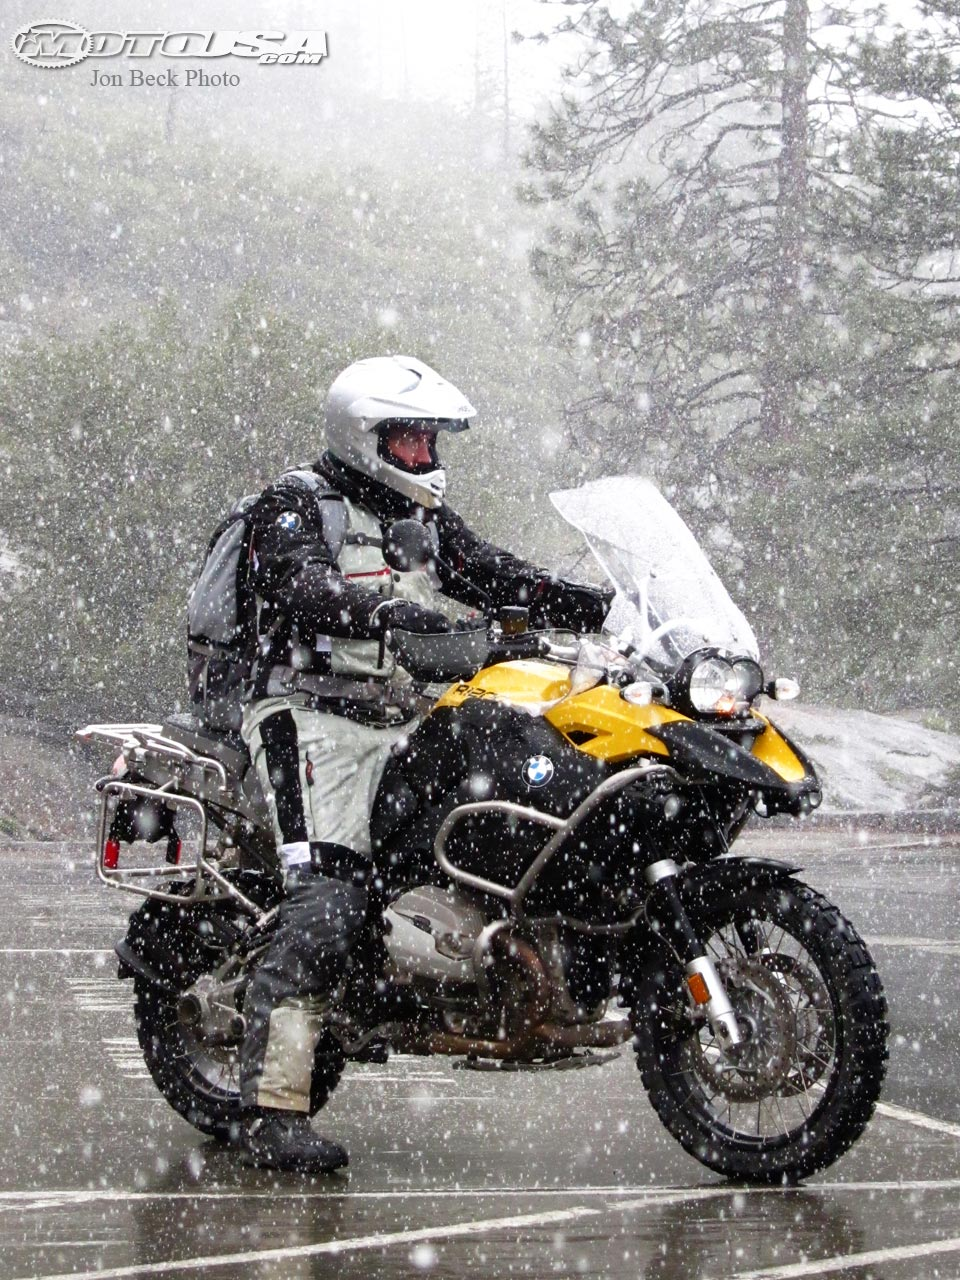 BMW R1200GS images #8277